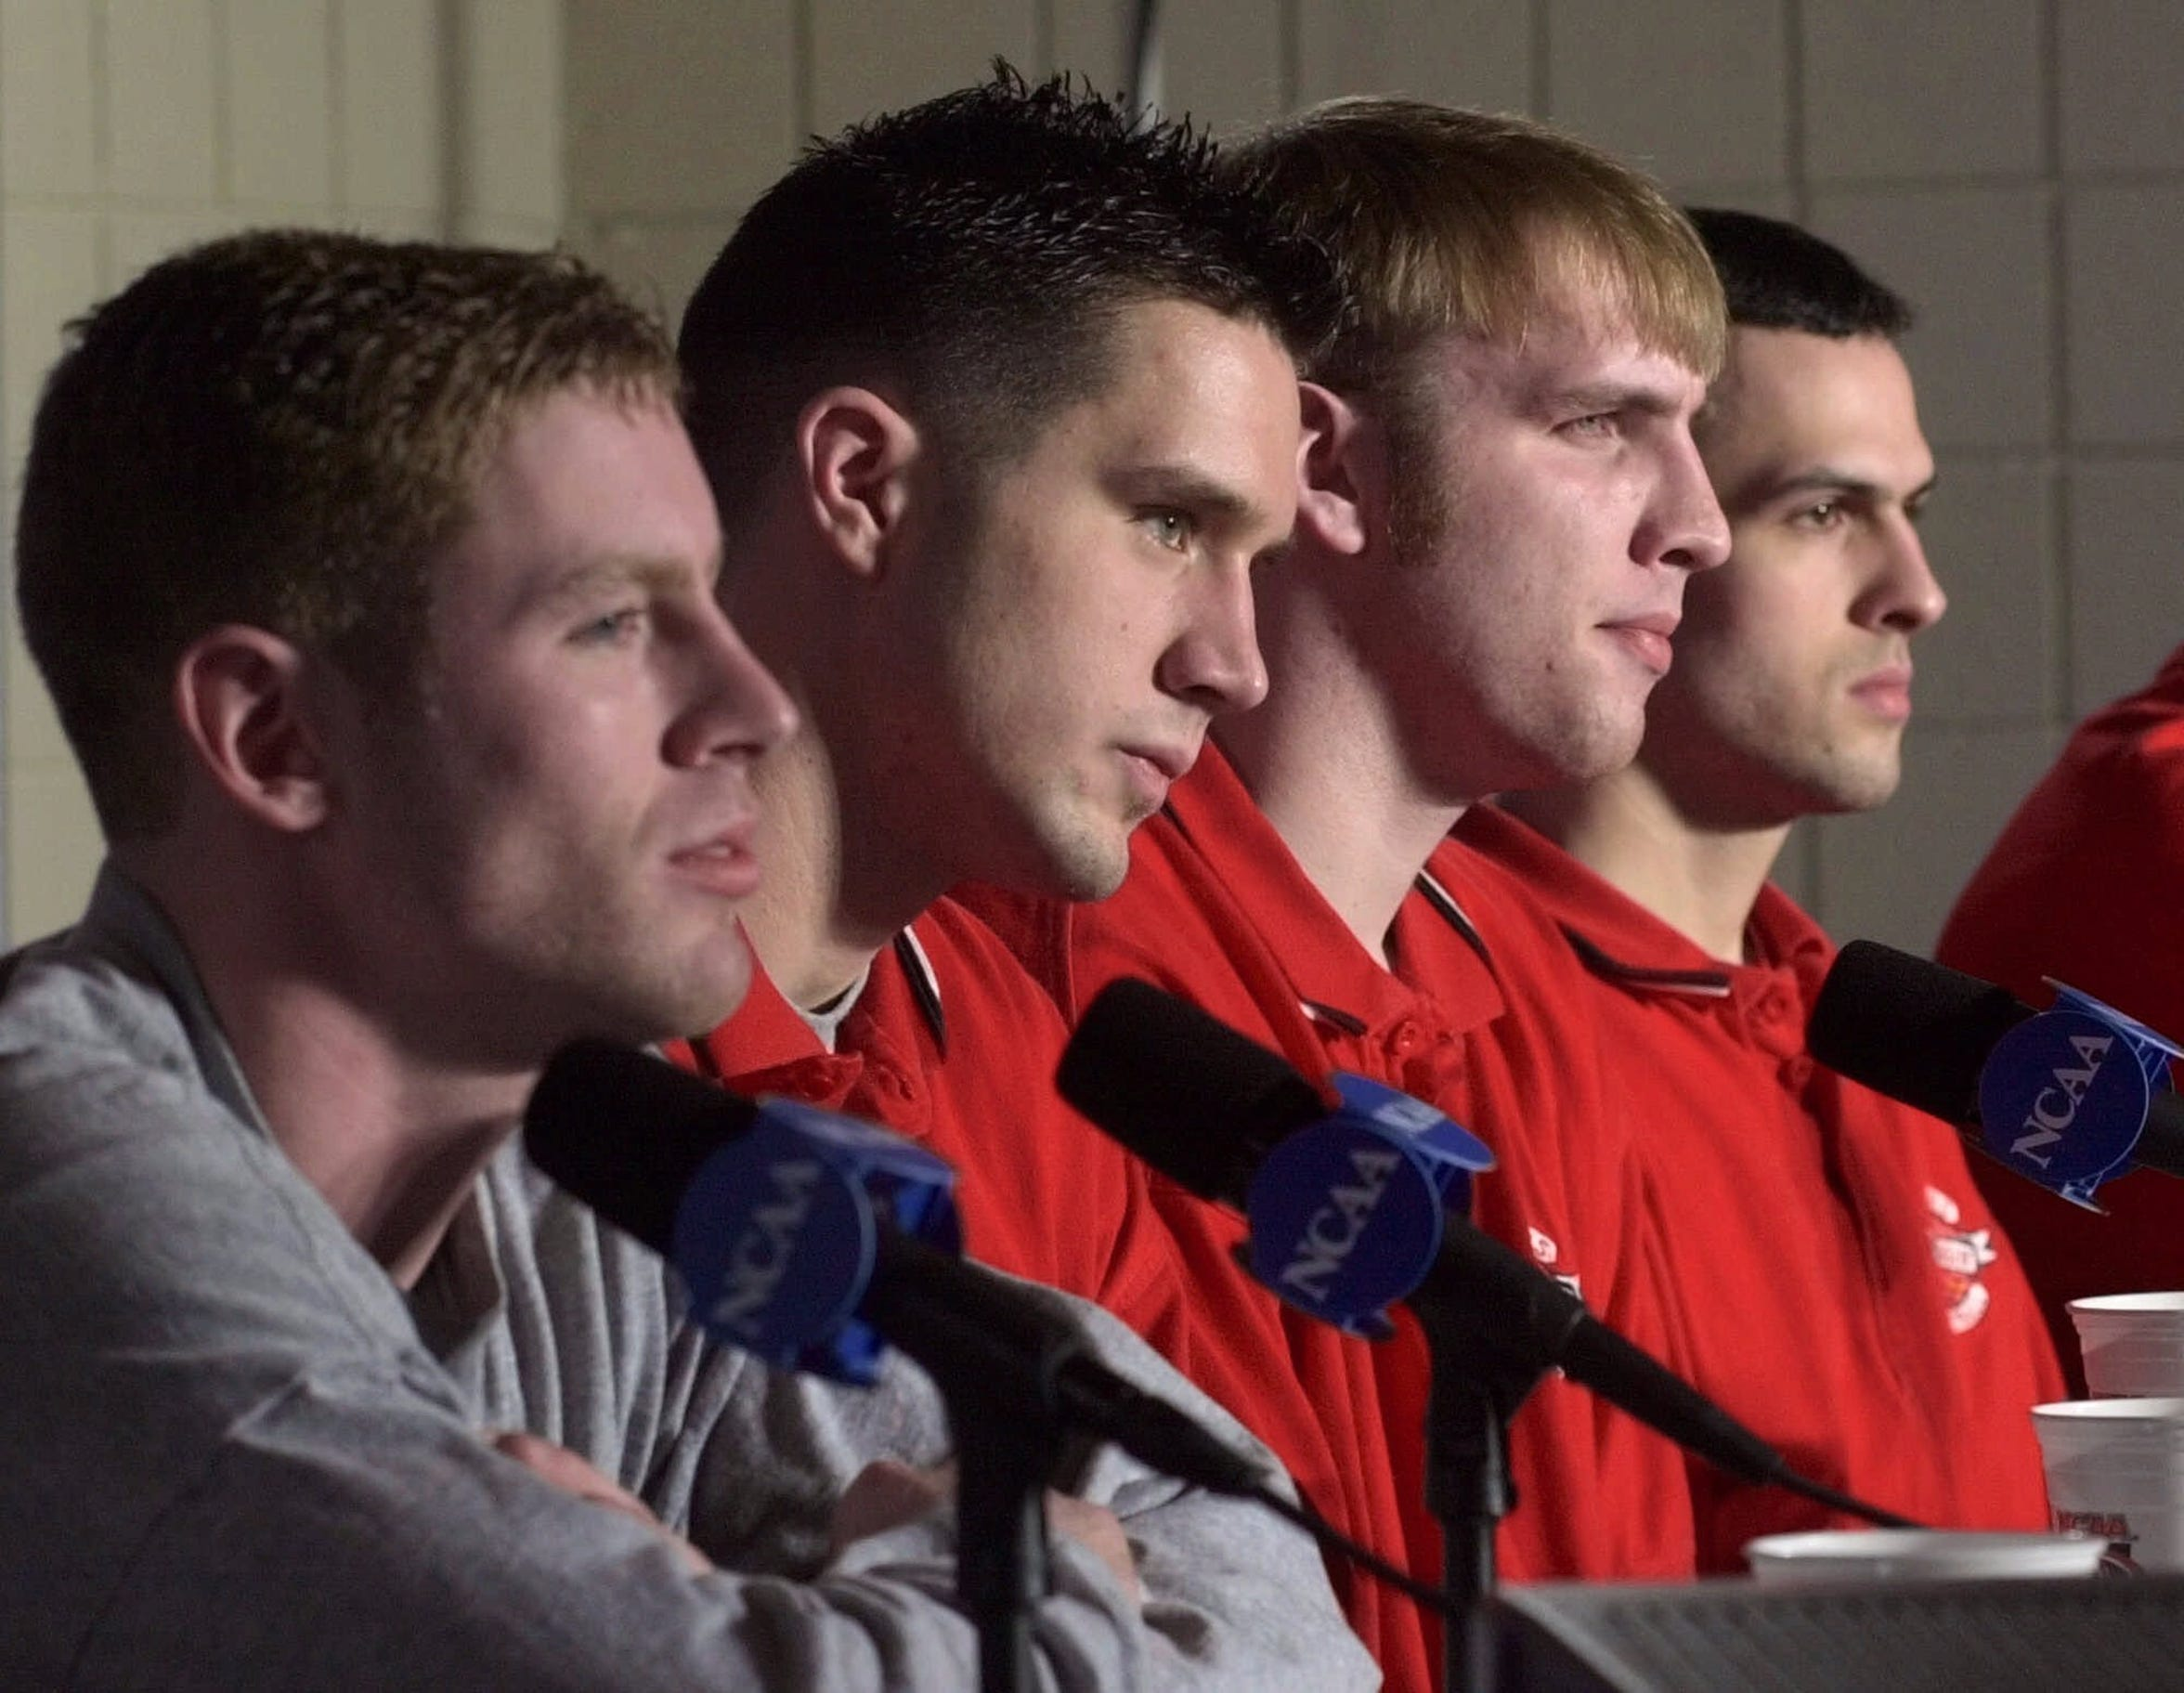 Wisconsin players, from left, Jon Bryant, Andy Kowske, Mark Vershaw and Mike Kelley, answer questions during their news conference at the NCAA West Regionals Friday, March 24, 2000, in Albuquerque.